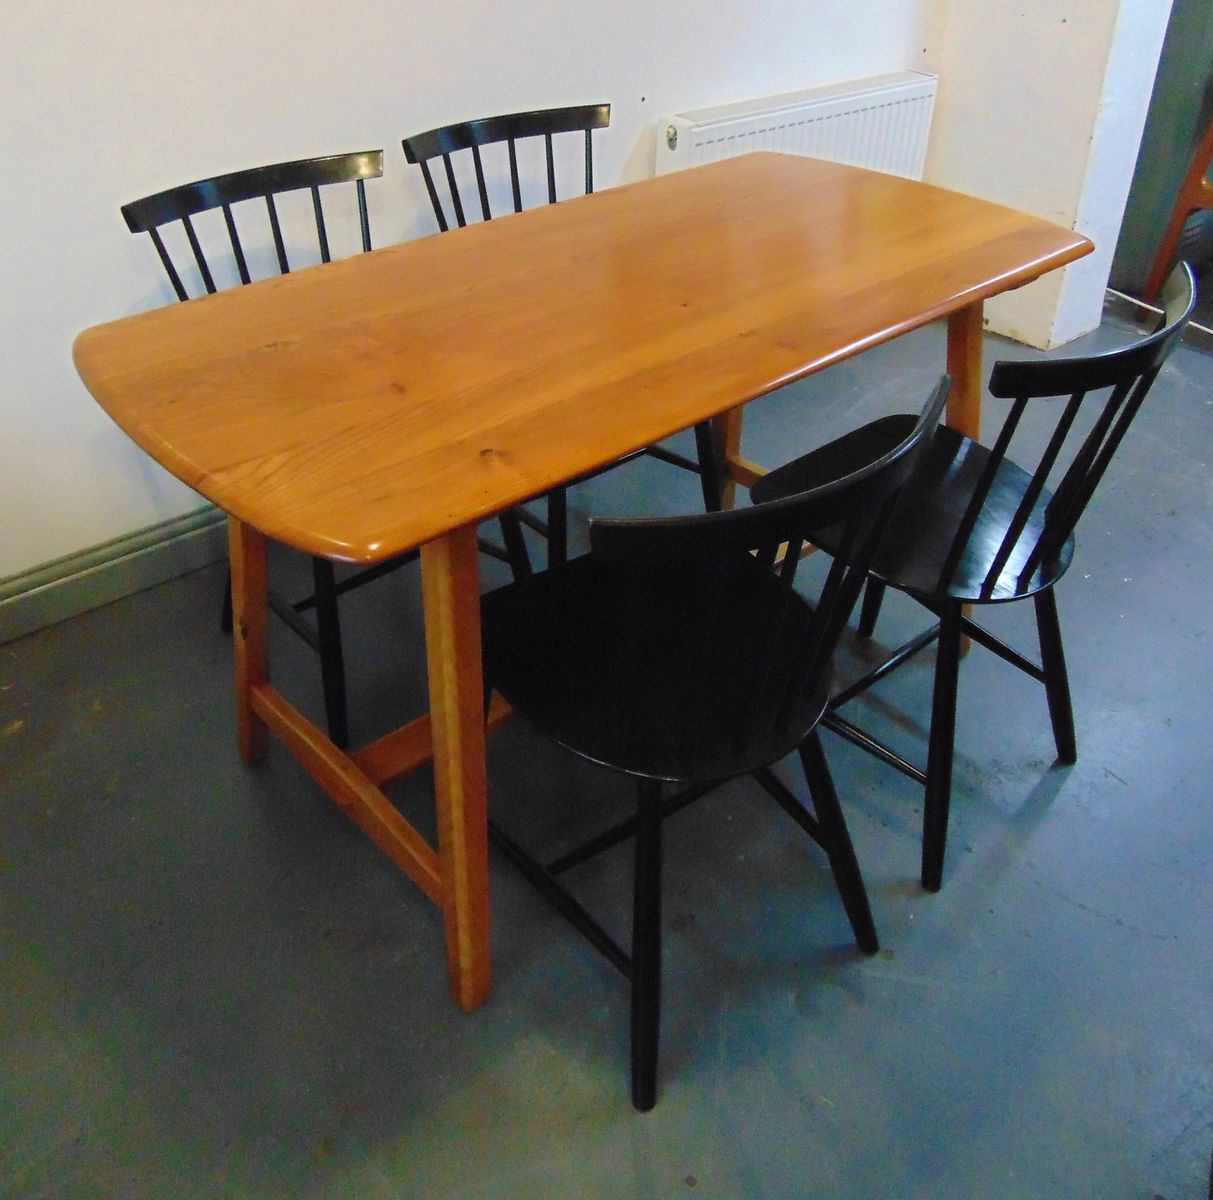 Elm trestle dining table from ercol 1950s for sale at pamono - Ercol dining table ...